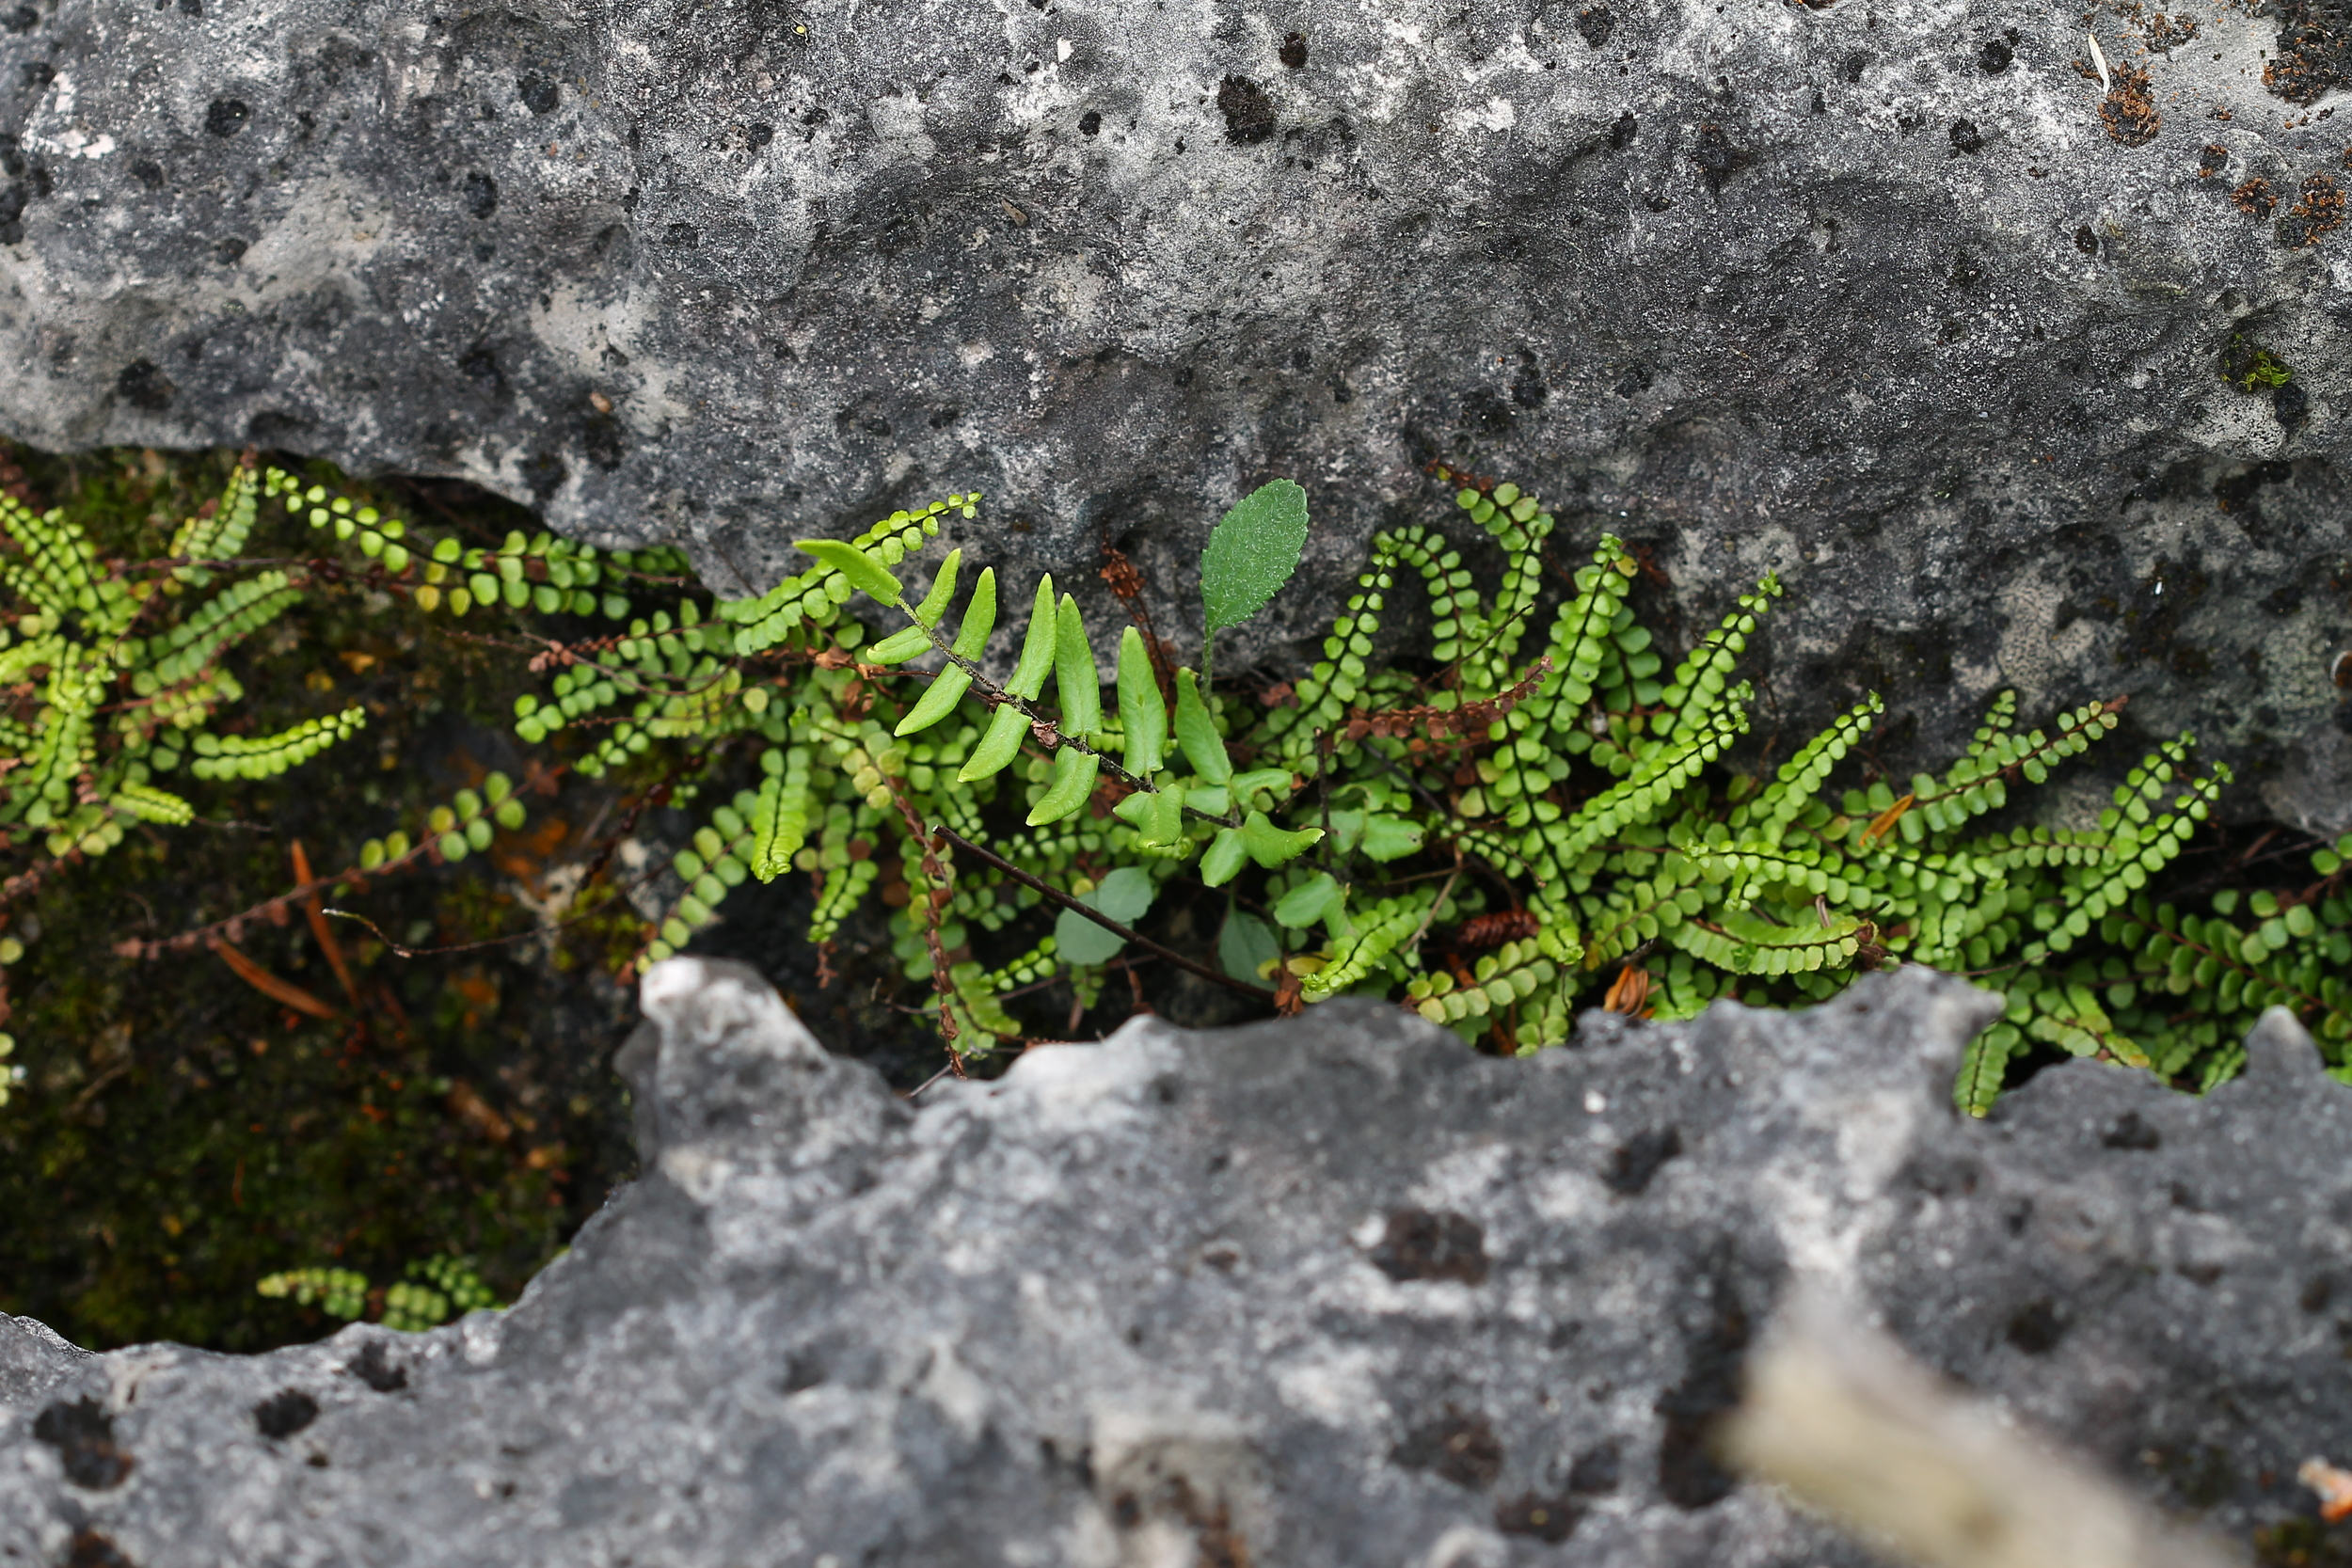 Image by Rob Routledge (Maidenhair Spleenwort, Purple Cliff-Brake, Bruce Peninsula).